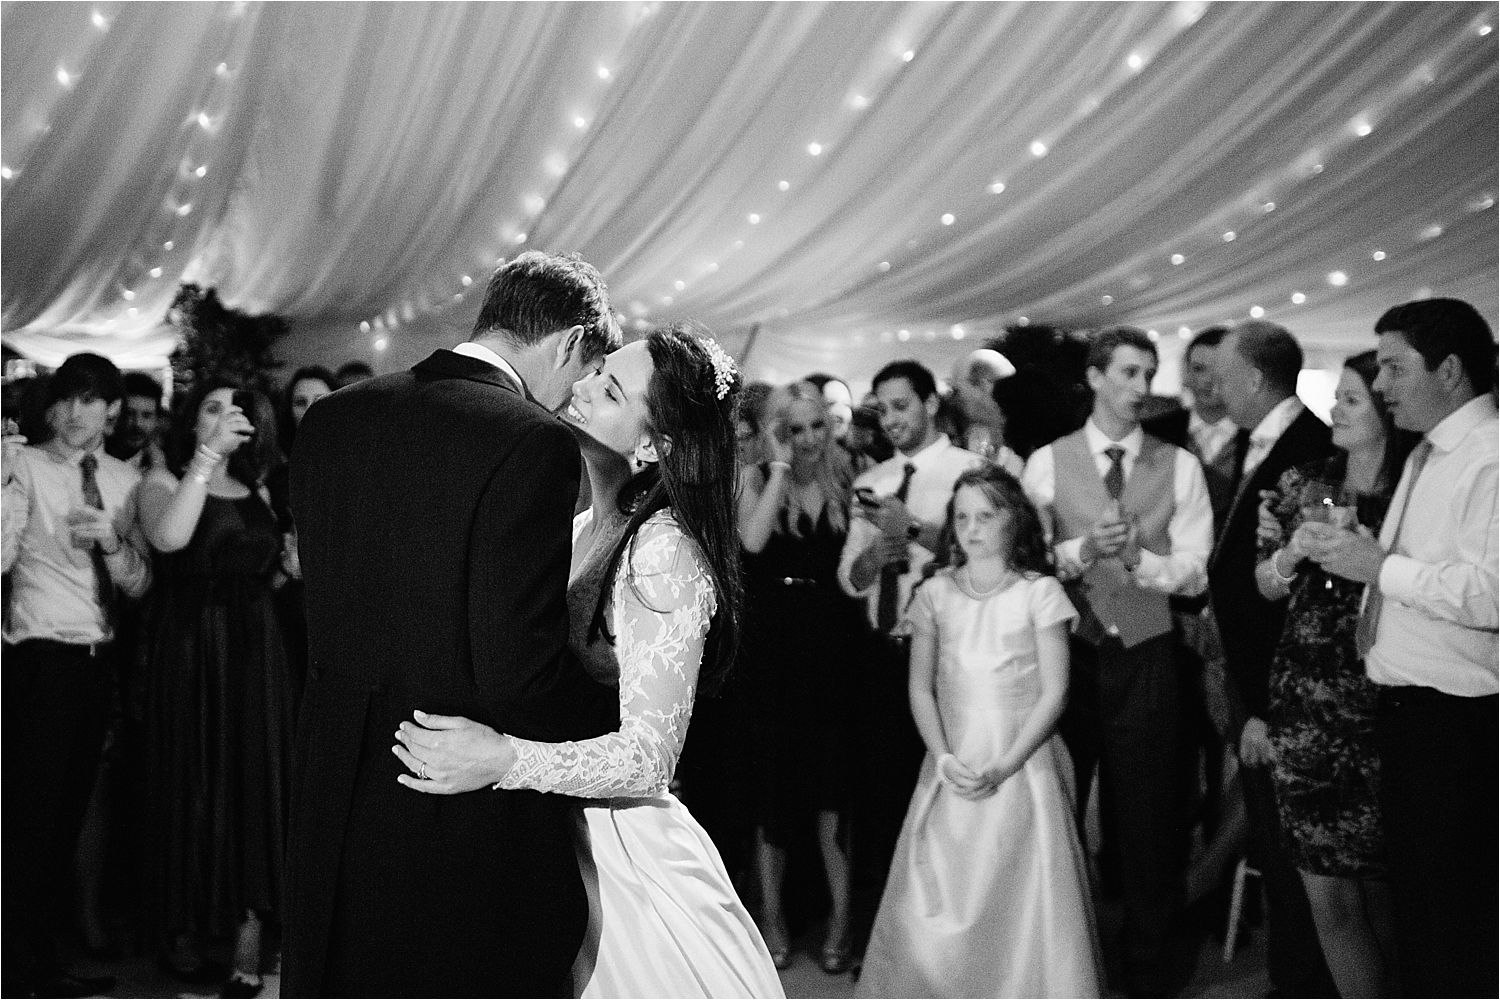 Wedding guests enjoy the bride and groom's first dance at Cheshire marquee wedding